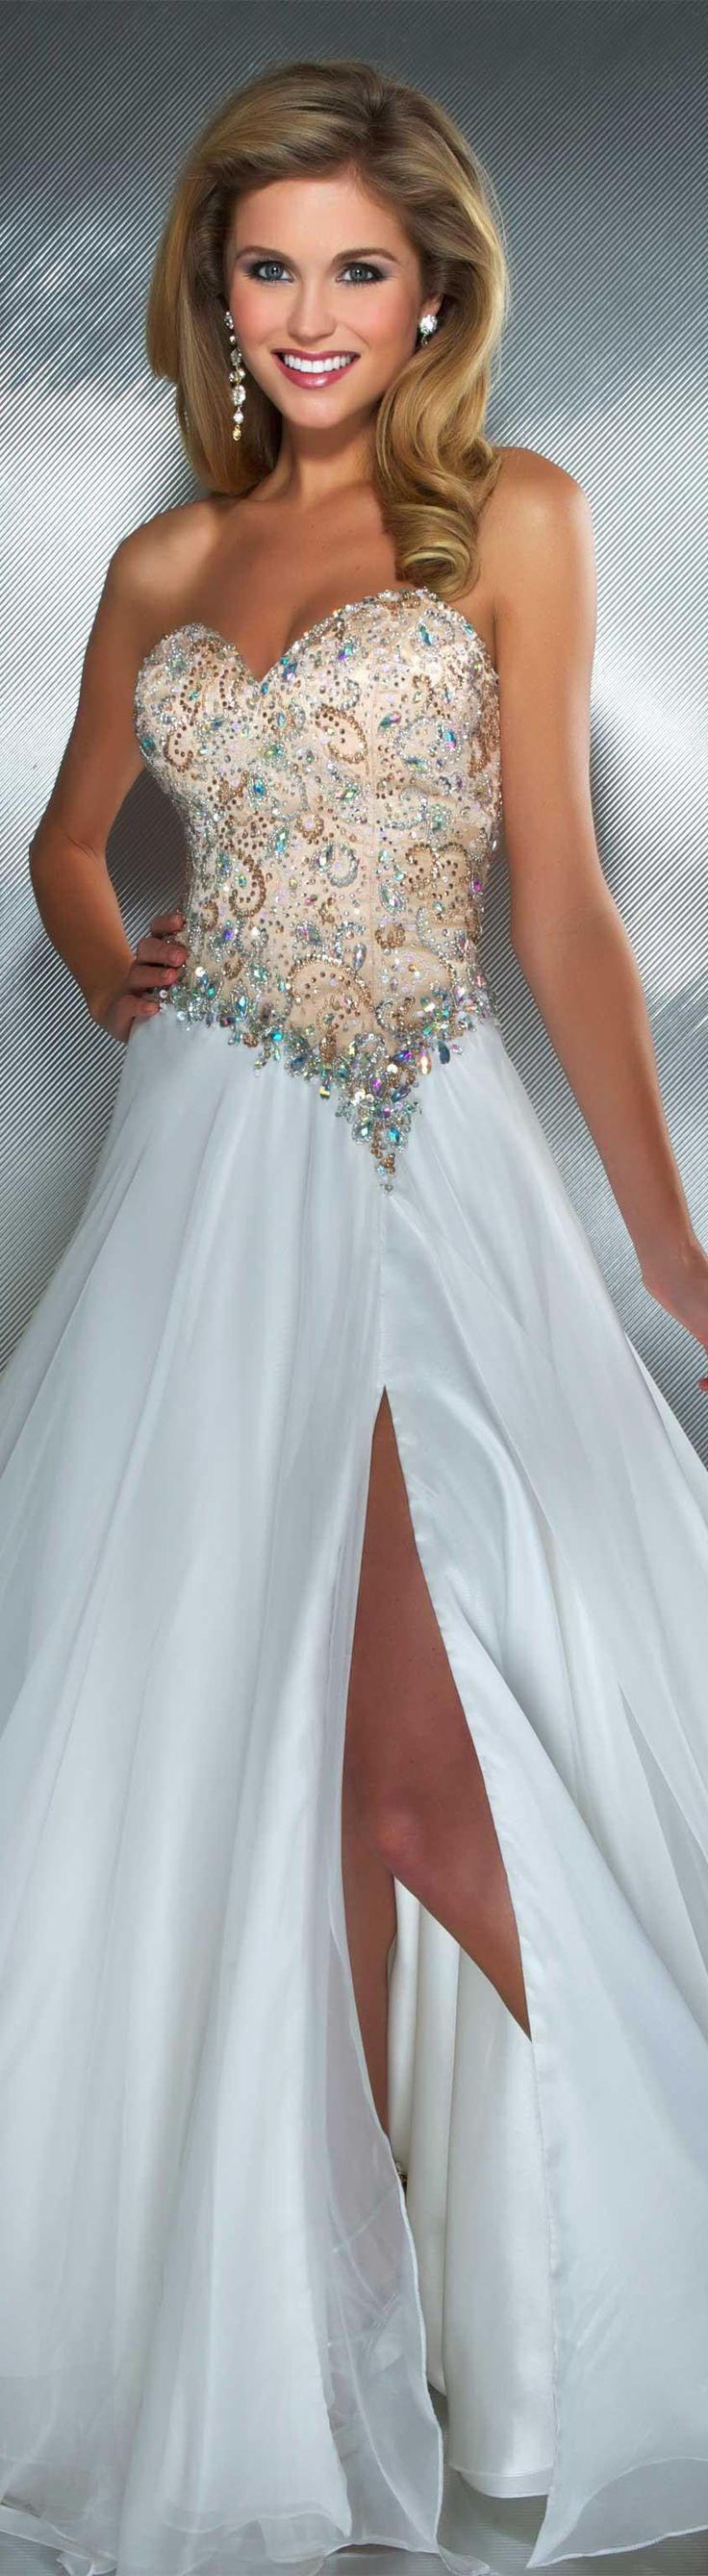 holy cow this is gorgeous.. don't wanna see the price tag.